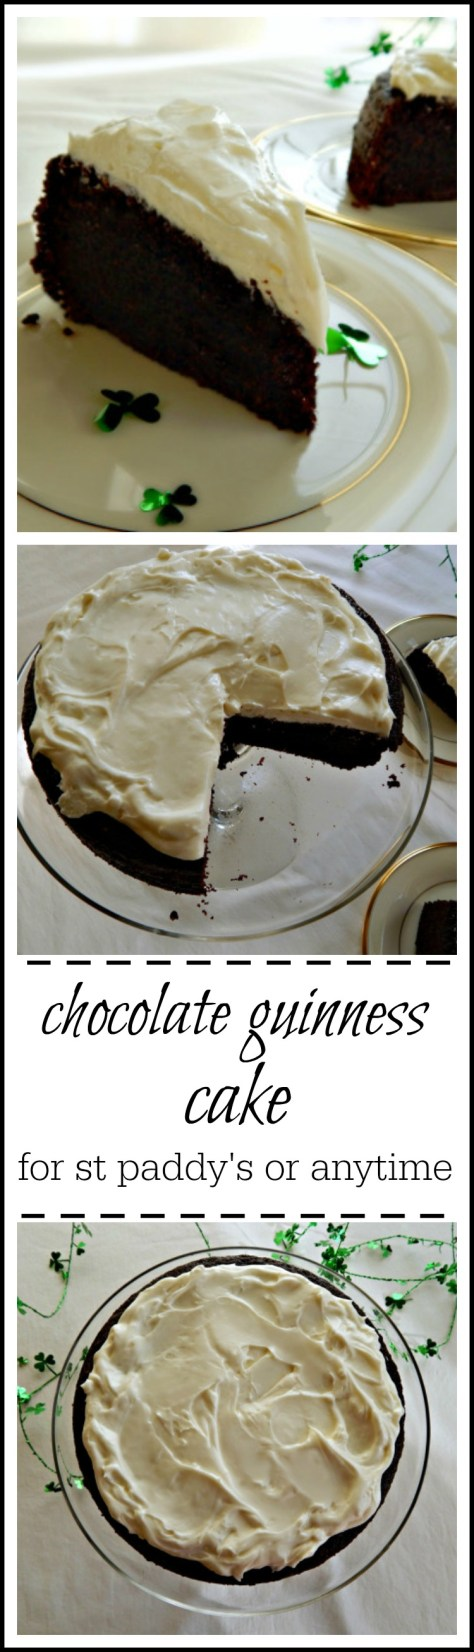 Nigella's Chocolate Guinness Cake - easy & great anytime!